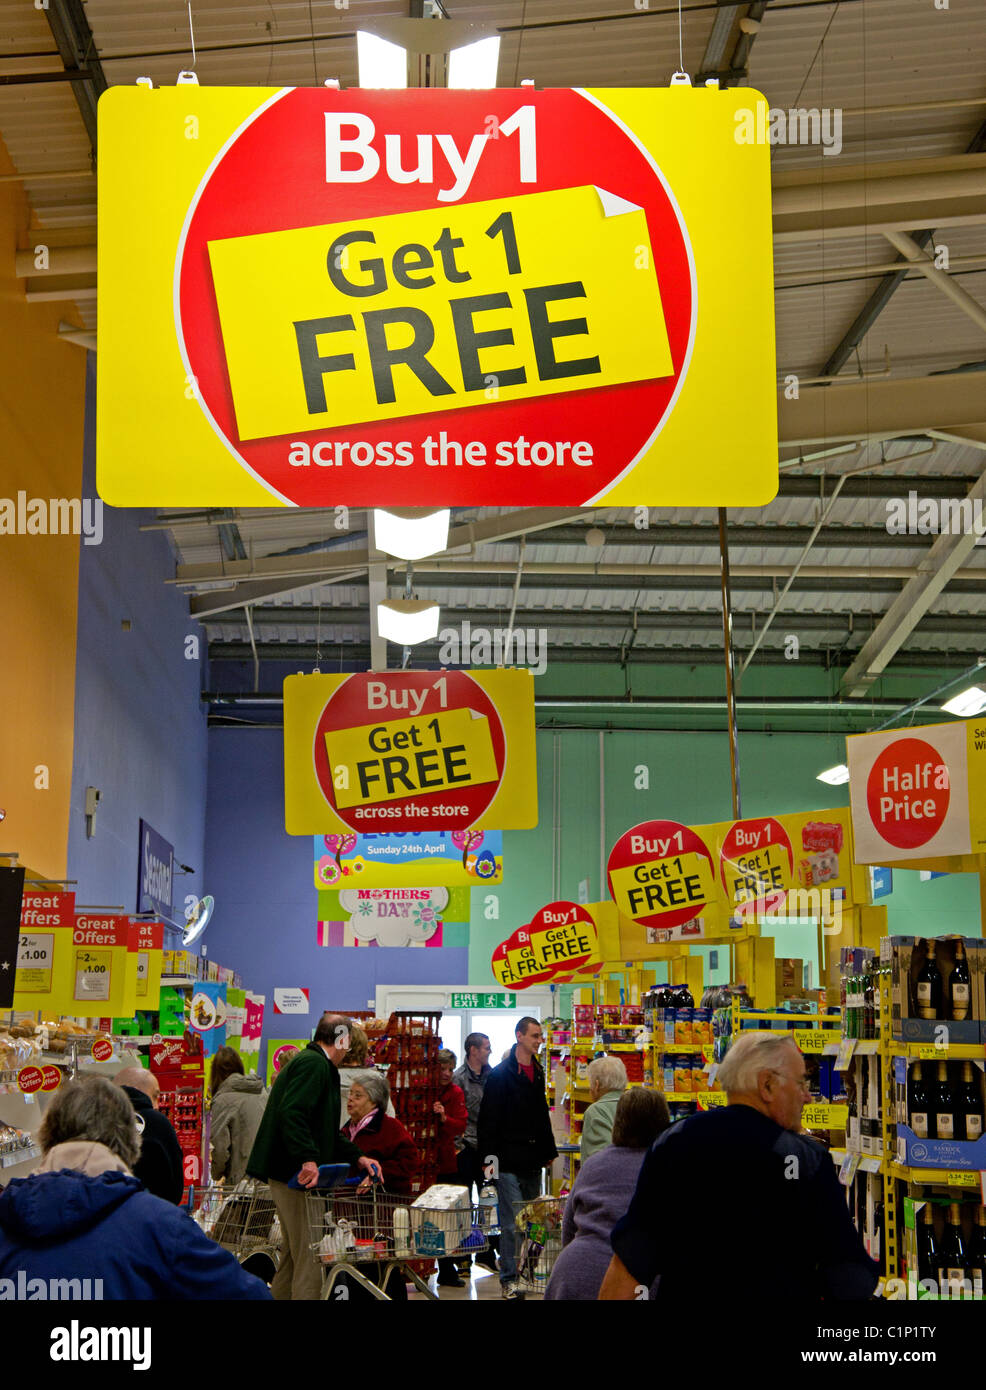 A ' Buy 1 get 1 free ' sign in a Tesco supermarket, UK - Stock Image